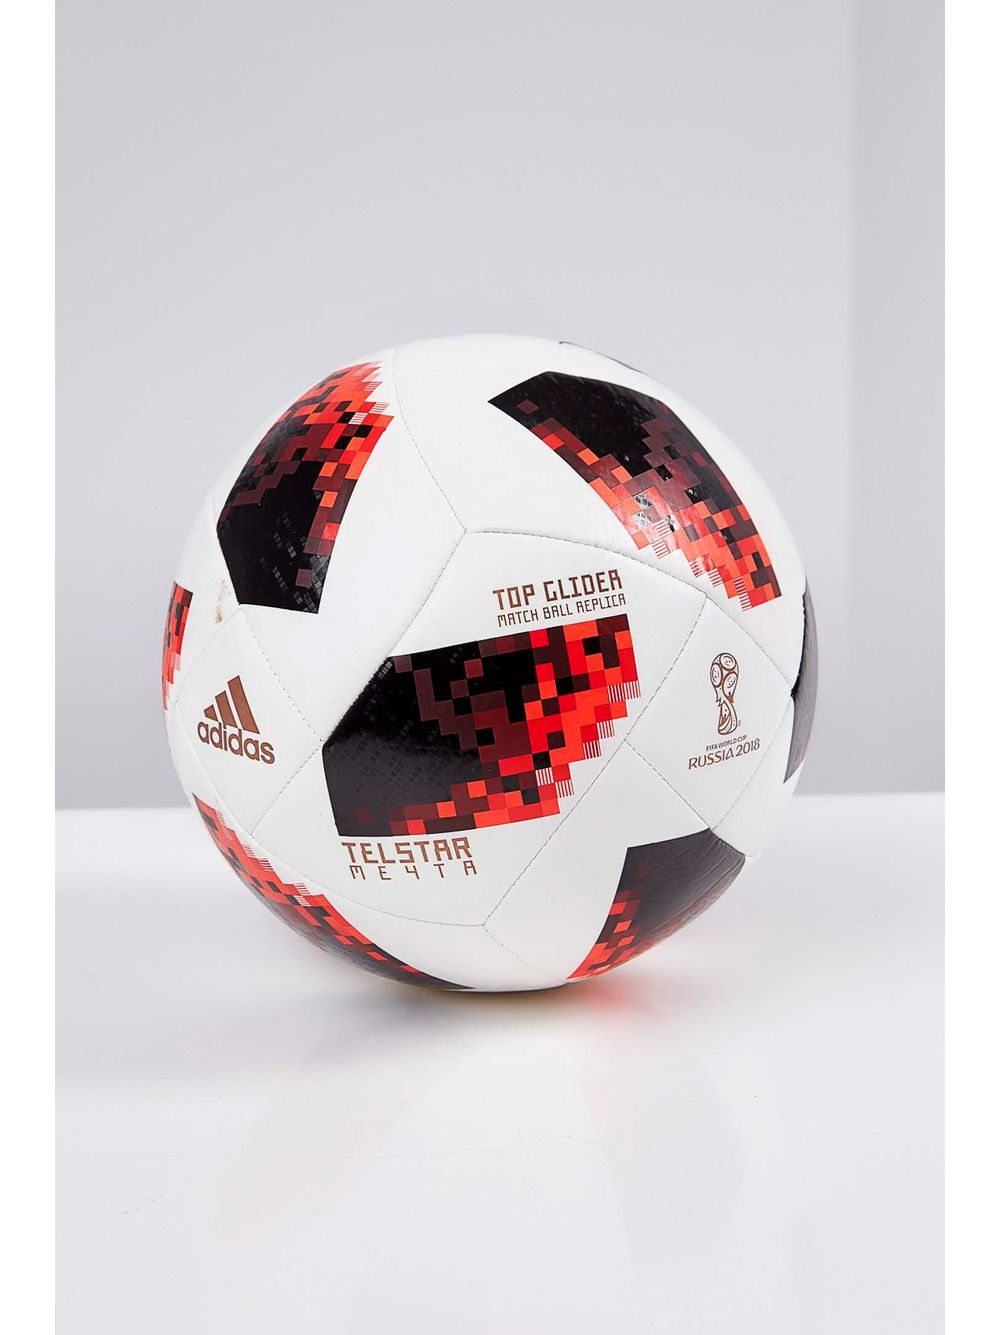 Bola Society Adidas Top Glider Wc18 Mata Mata Branco - pittol a55061e4549fb